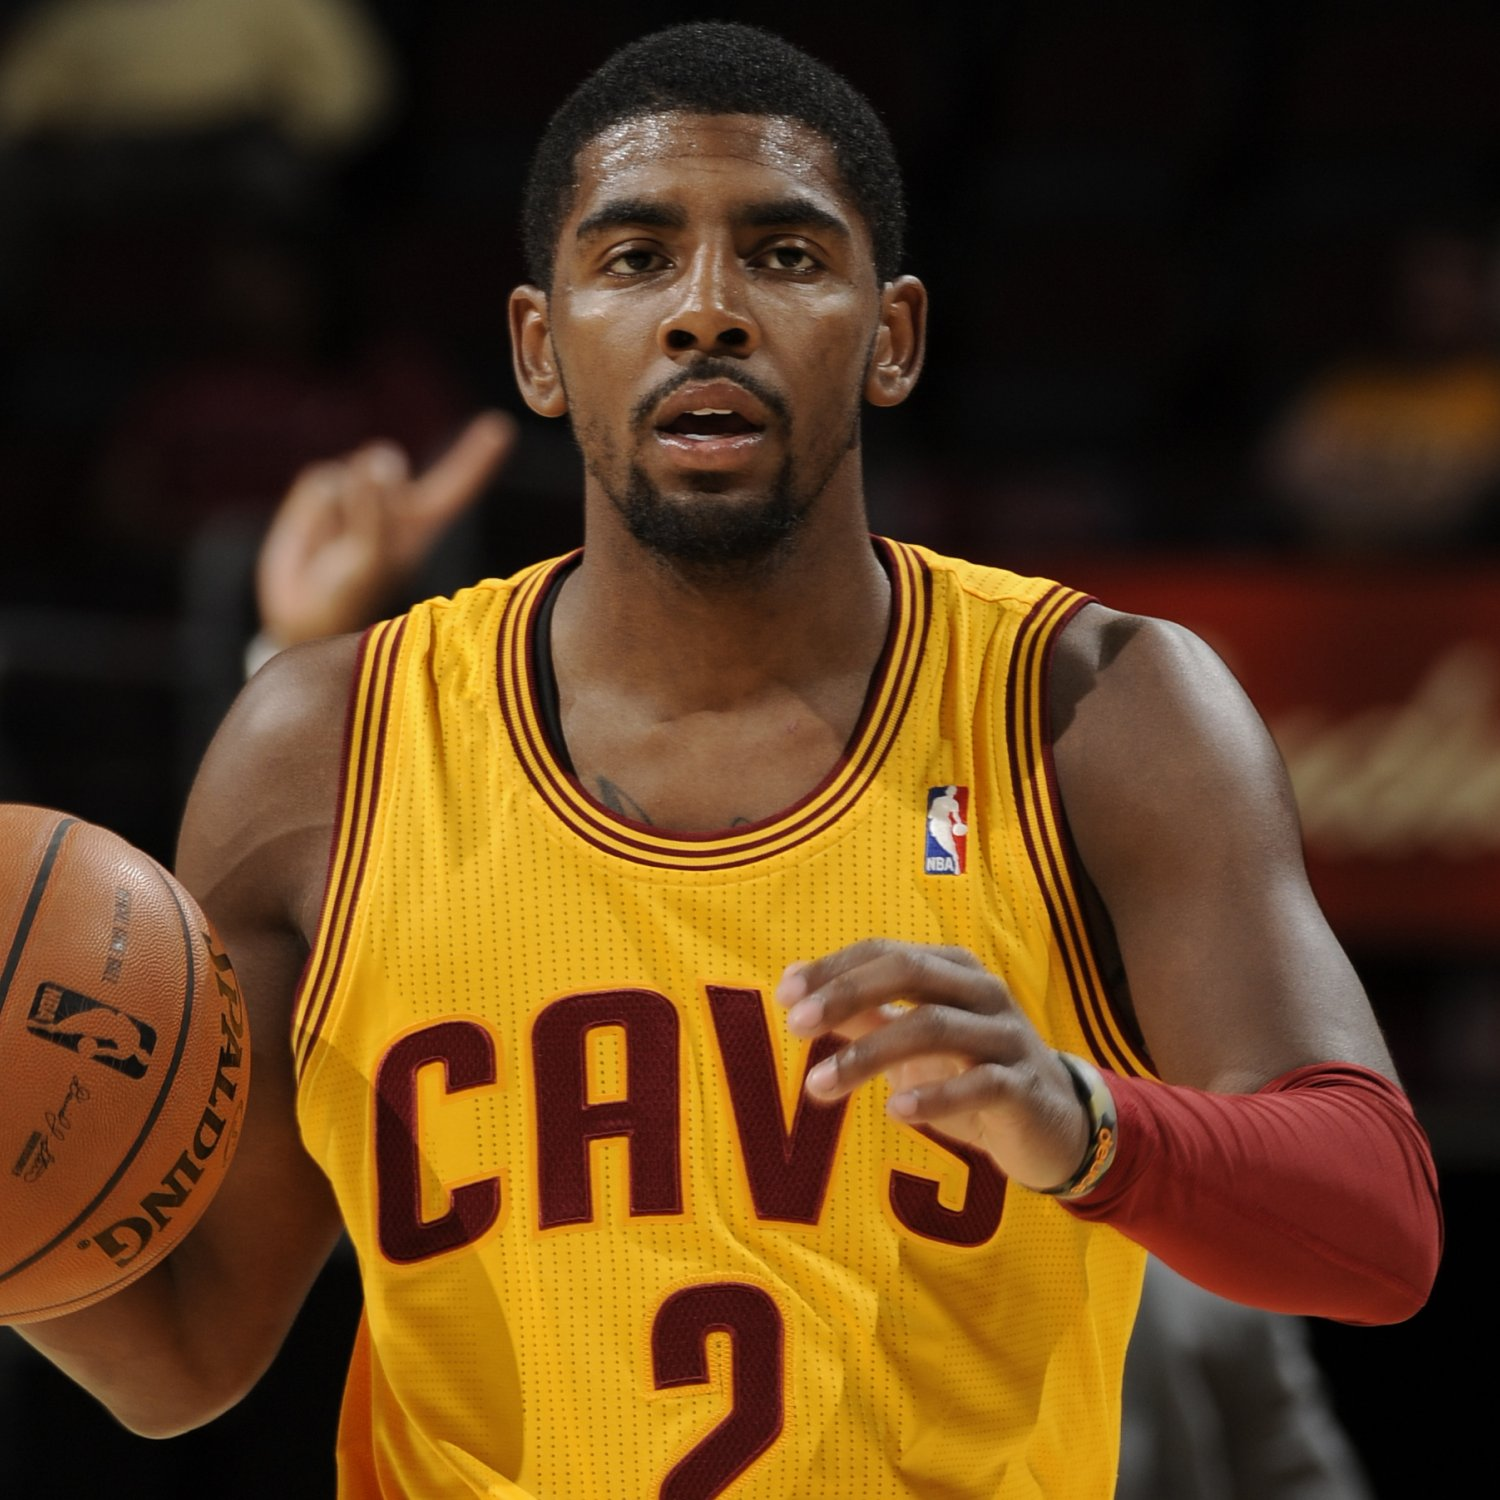 kyrie irving?fit=1200%2C1200&ssl=1 kyrie irving all star scoring workout hoops u basketball